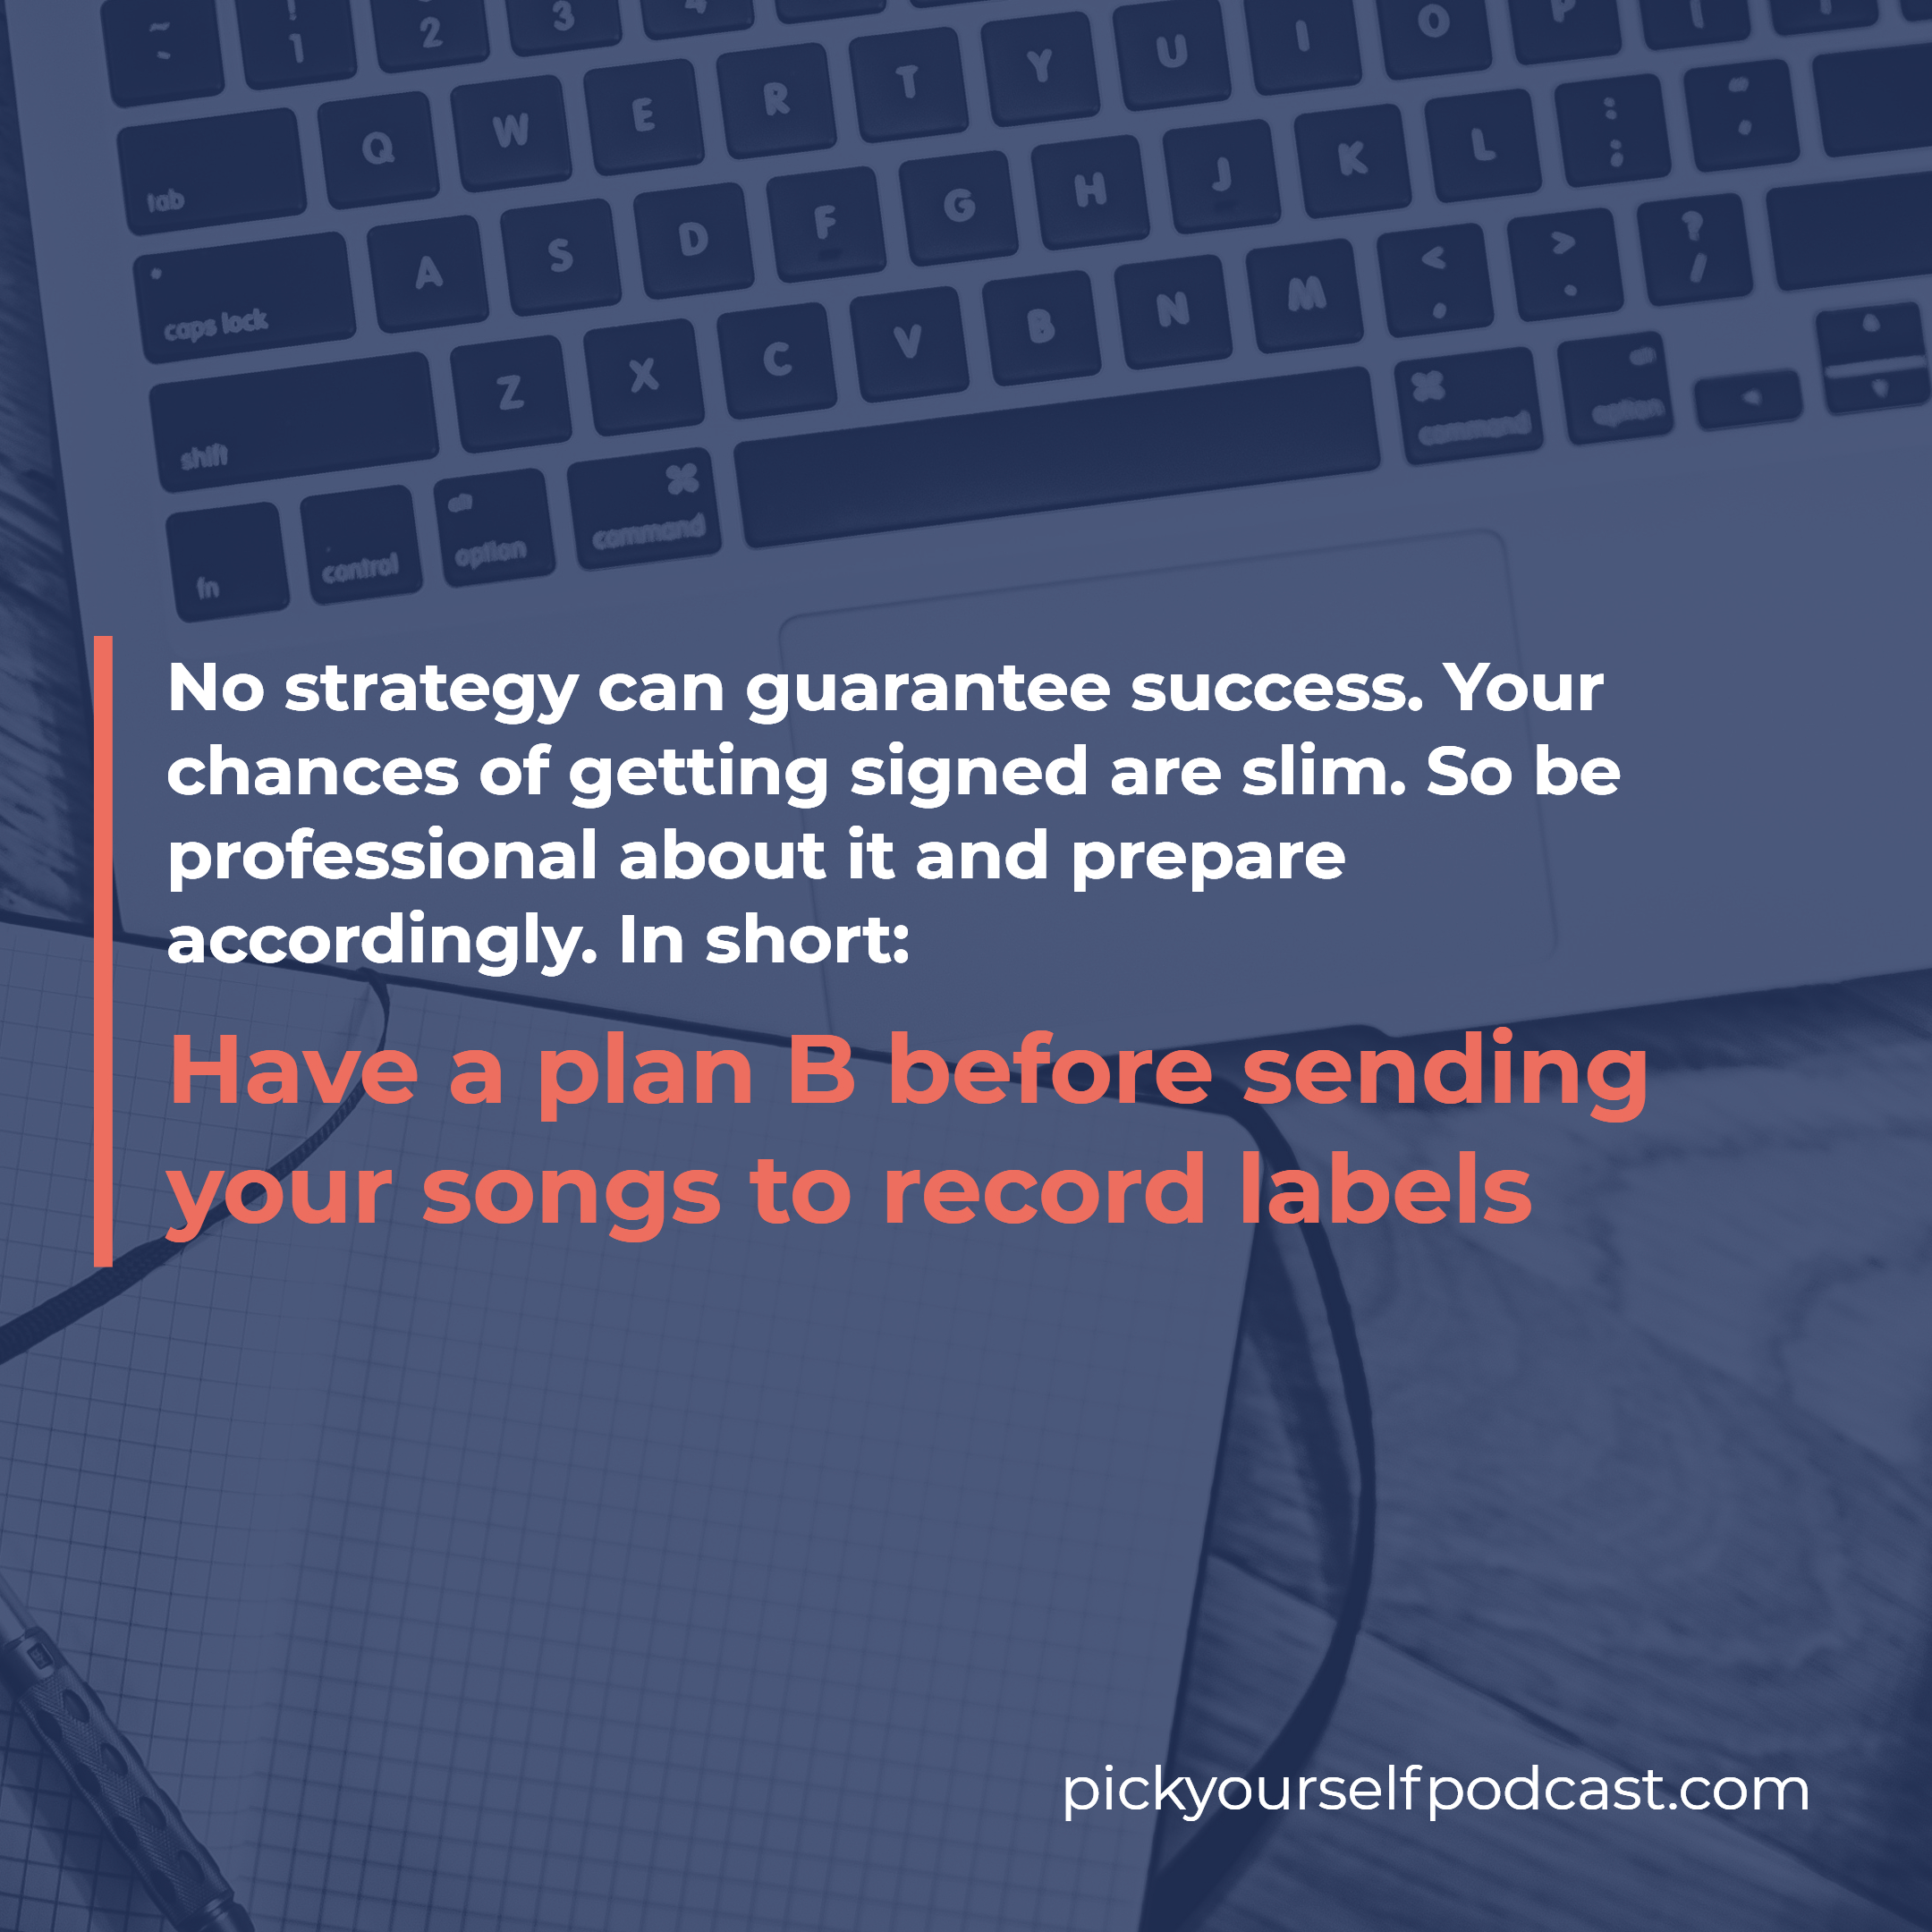 How to submit songs to labels visual 03. It says: No strategy can guarantee success. Your chances of getting signed are slim. So be professional about it and prepare accordingly. In short: Have a plan B before sending your songs to record labels.